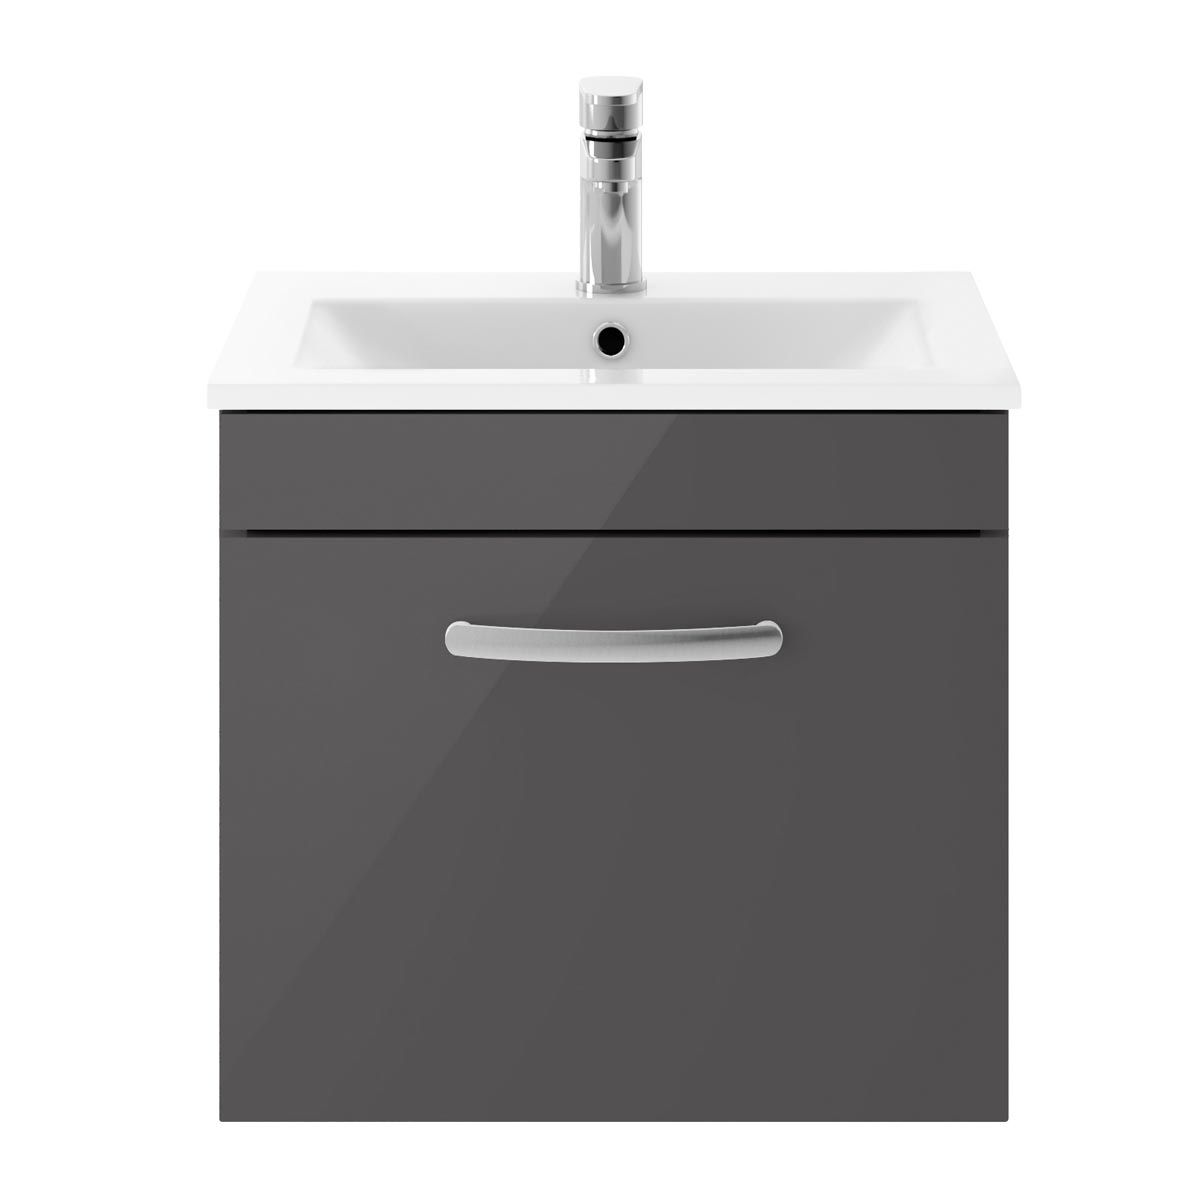 Nuie Athena Gloss Grey 1 Drawer Wall Hung Vanity Unit with 18mm Profile Basin 500mm